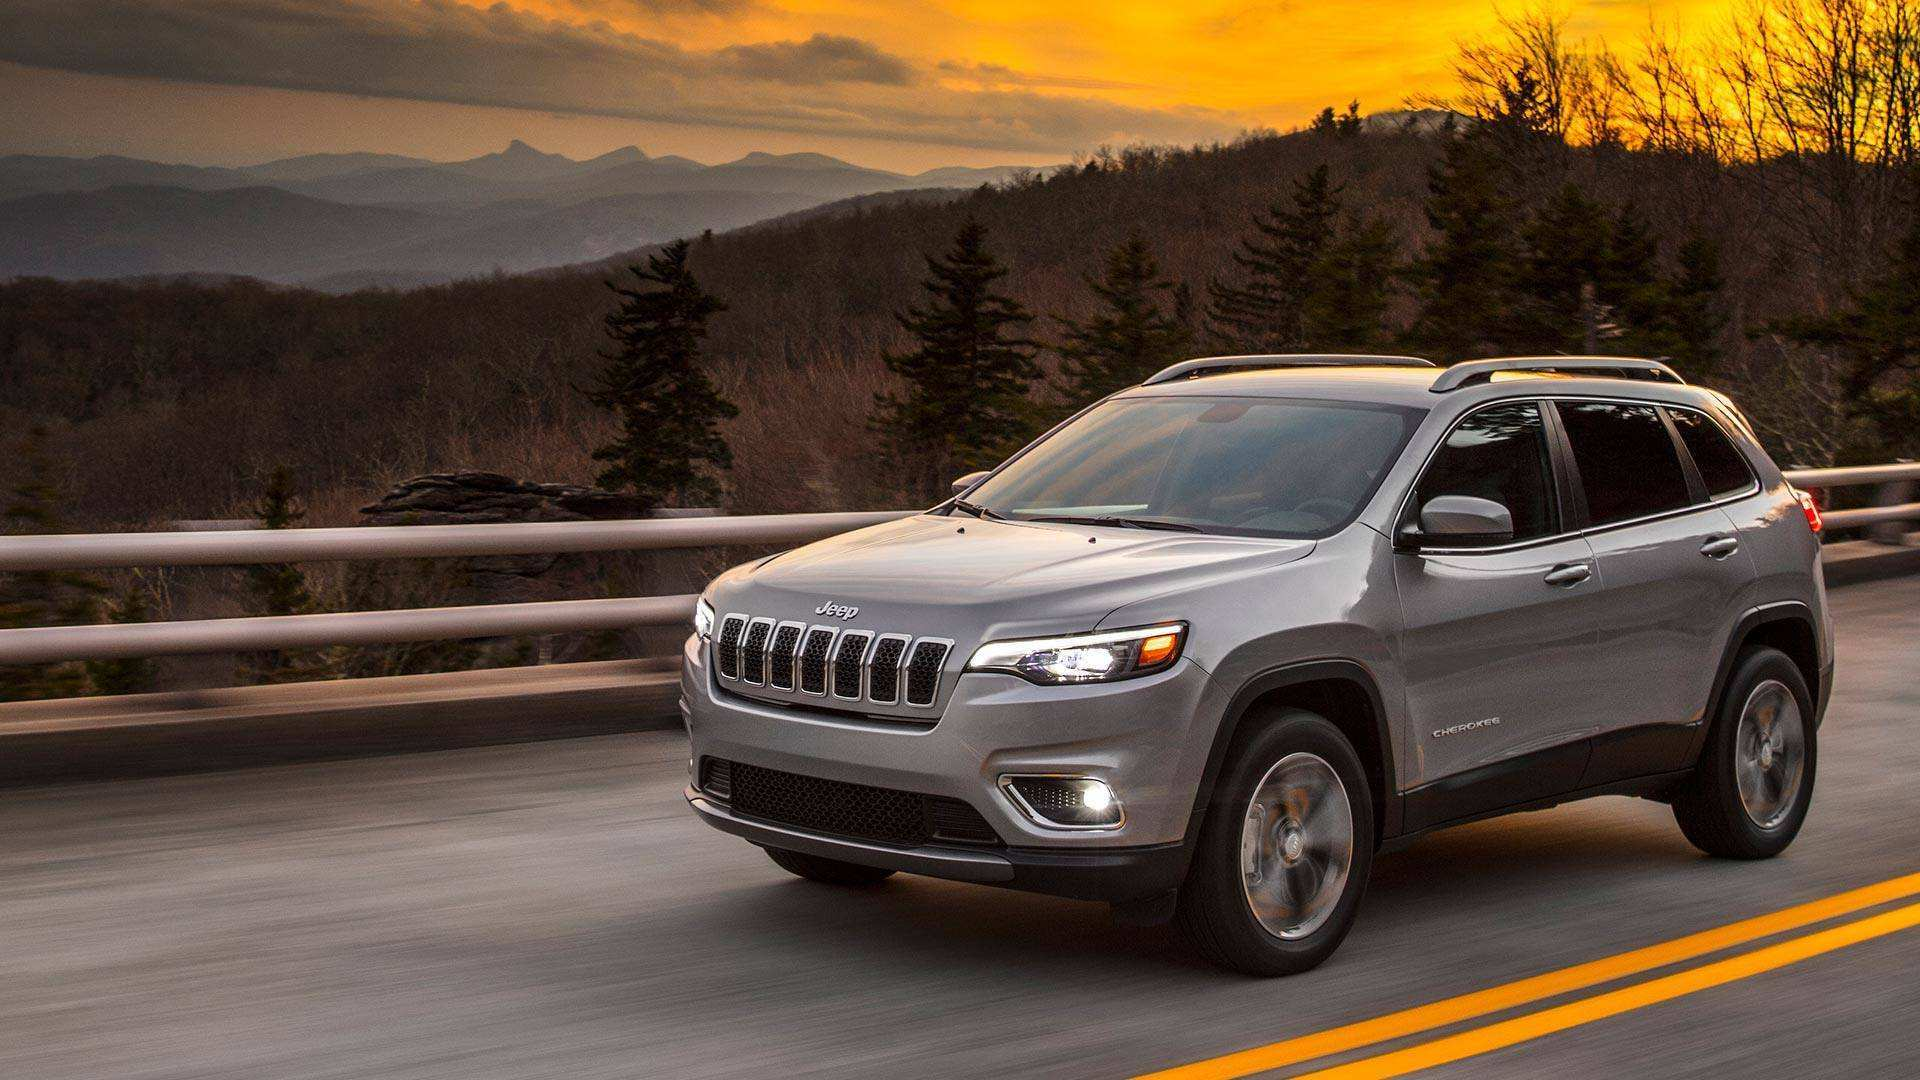 98 New Best Cherokee Jeep 2019 Review Specs And Review Photos for Best Cherokee Jeep 2019 Review Specs And Review